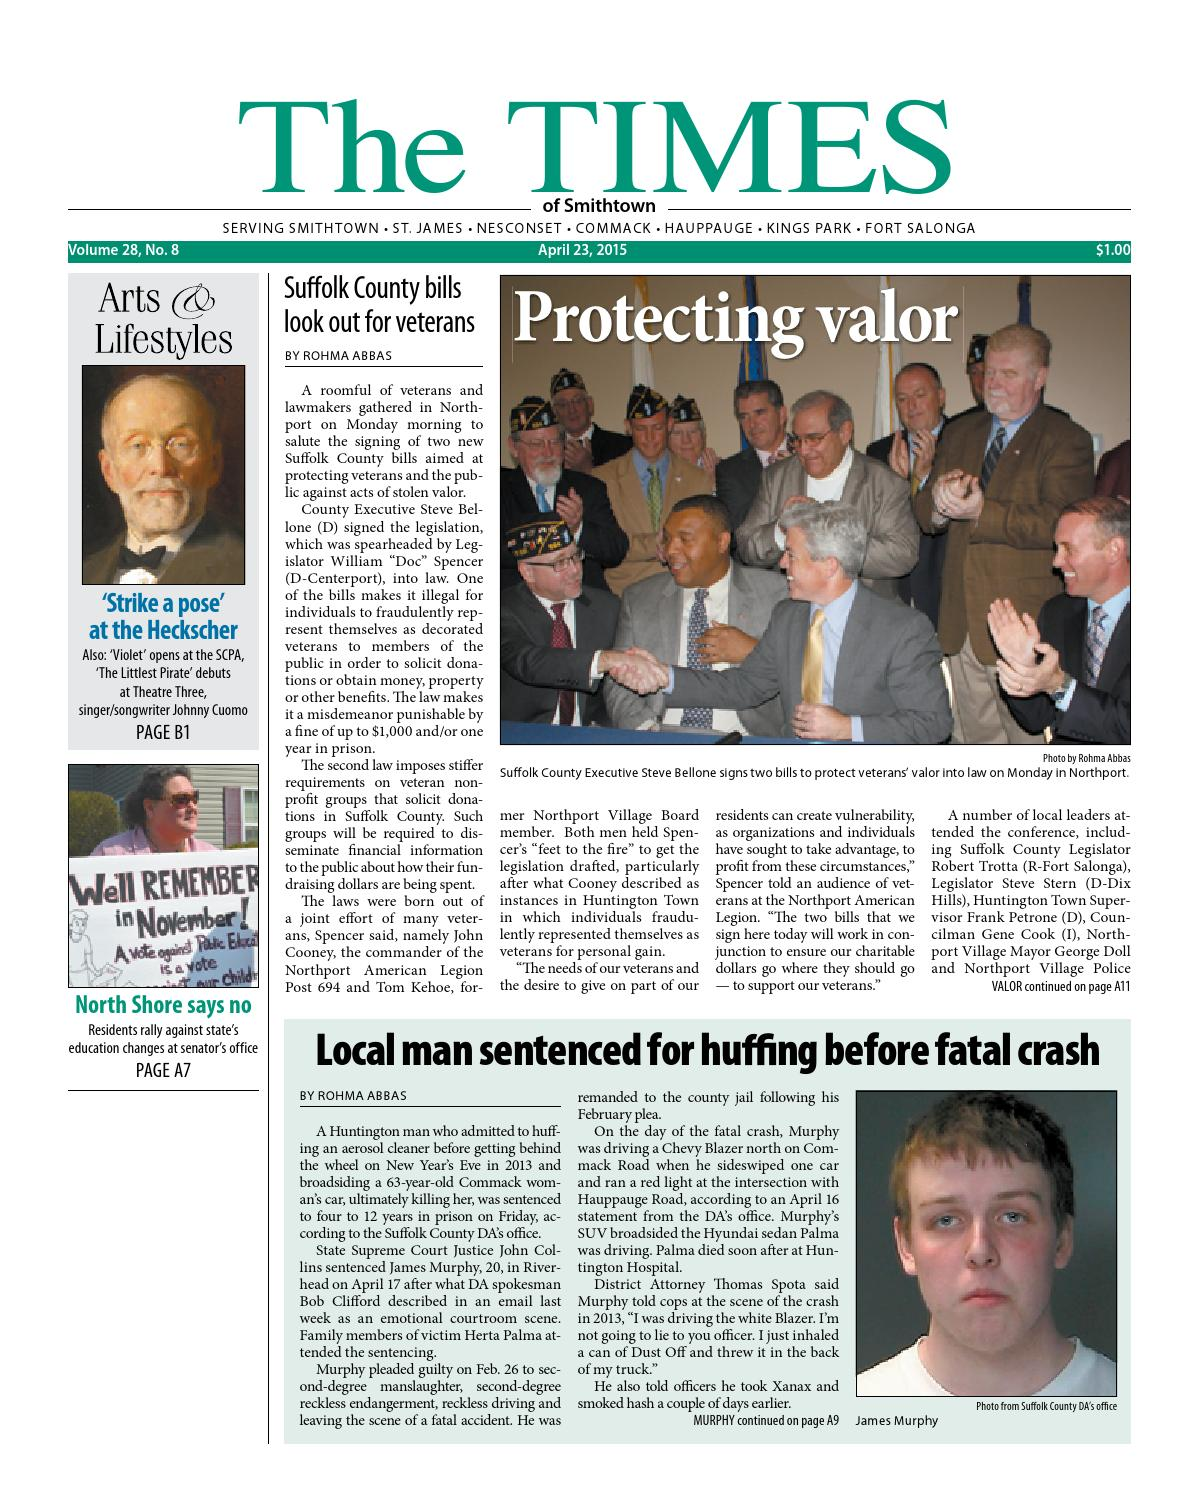 The times of smithtown april 23 2015 by tbr news media issuu fandeluxe Images